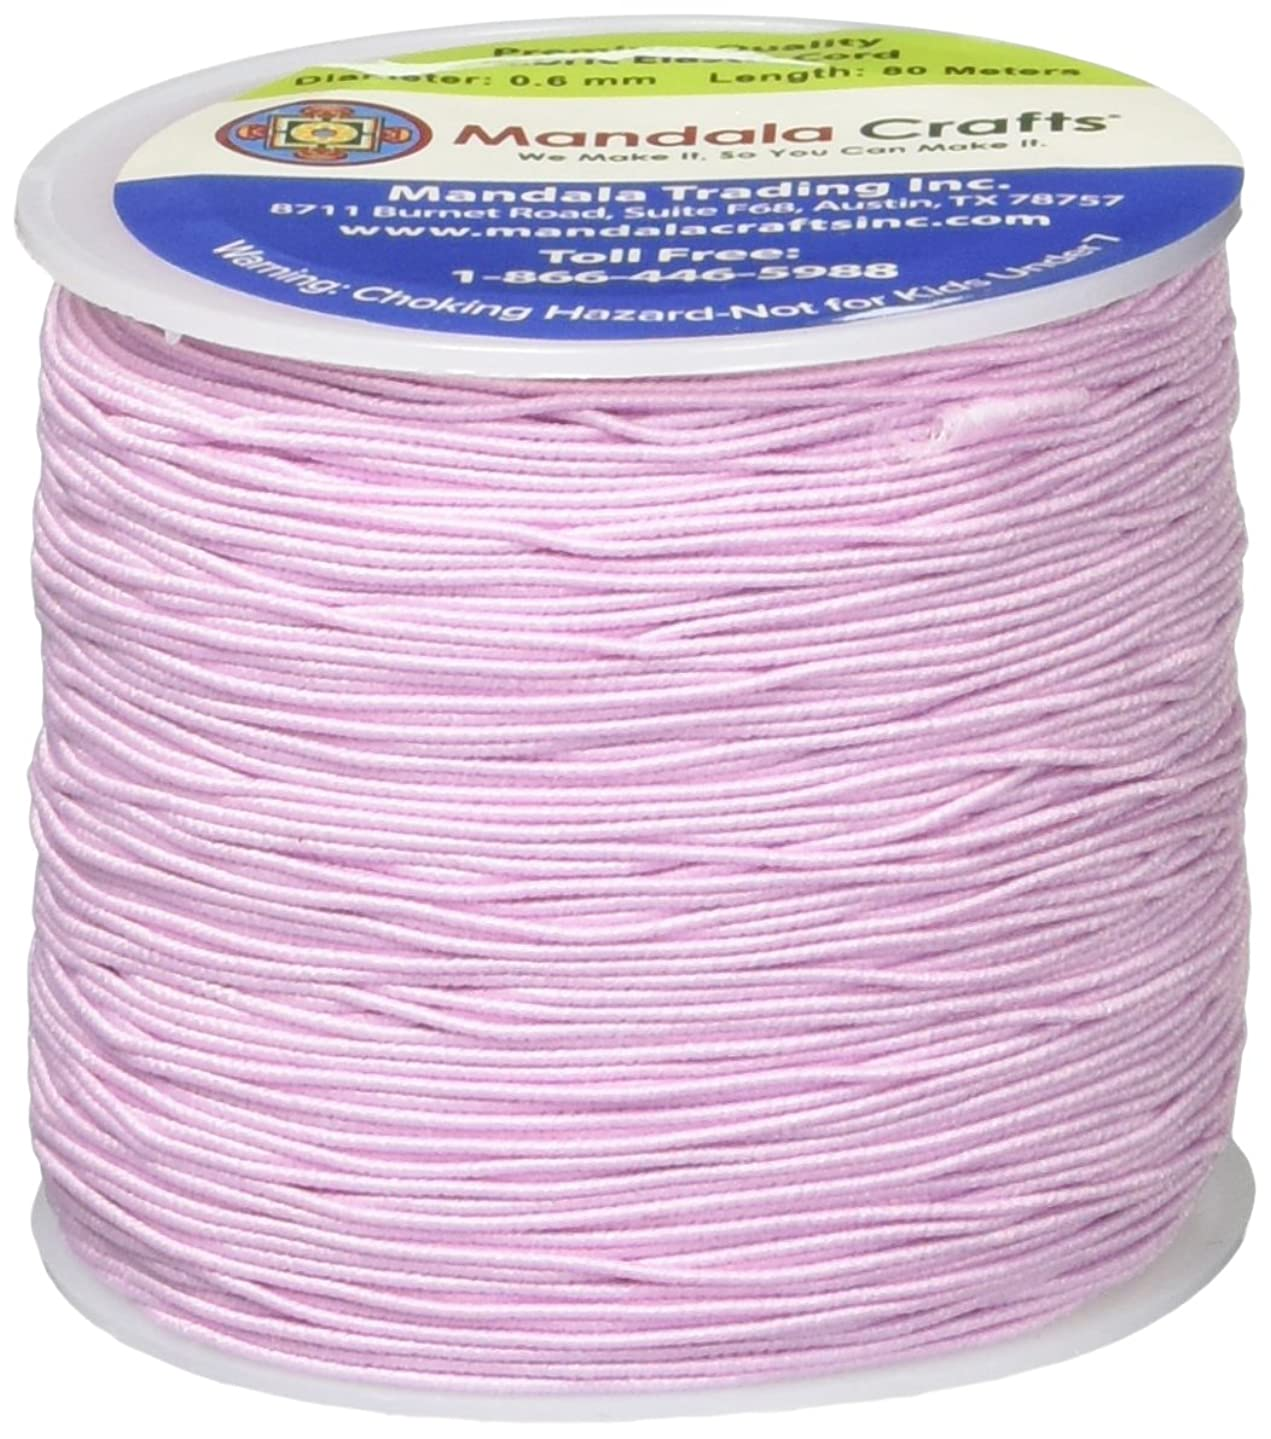 Mandala Crafts 0.6mm 80M Round Rubber Fabric Crafting Stretch Elastic Cord String (Pink)